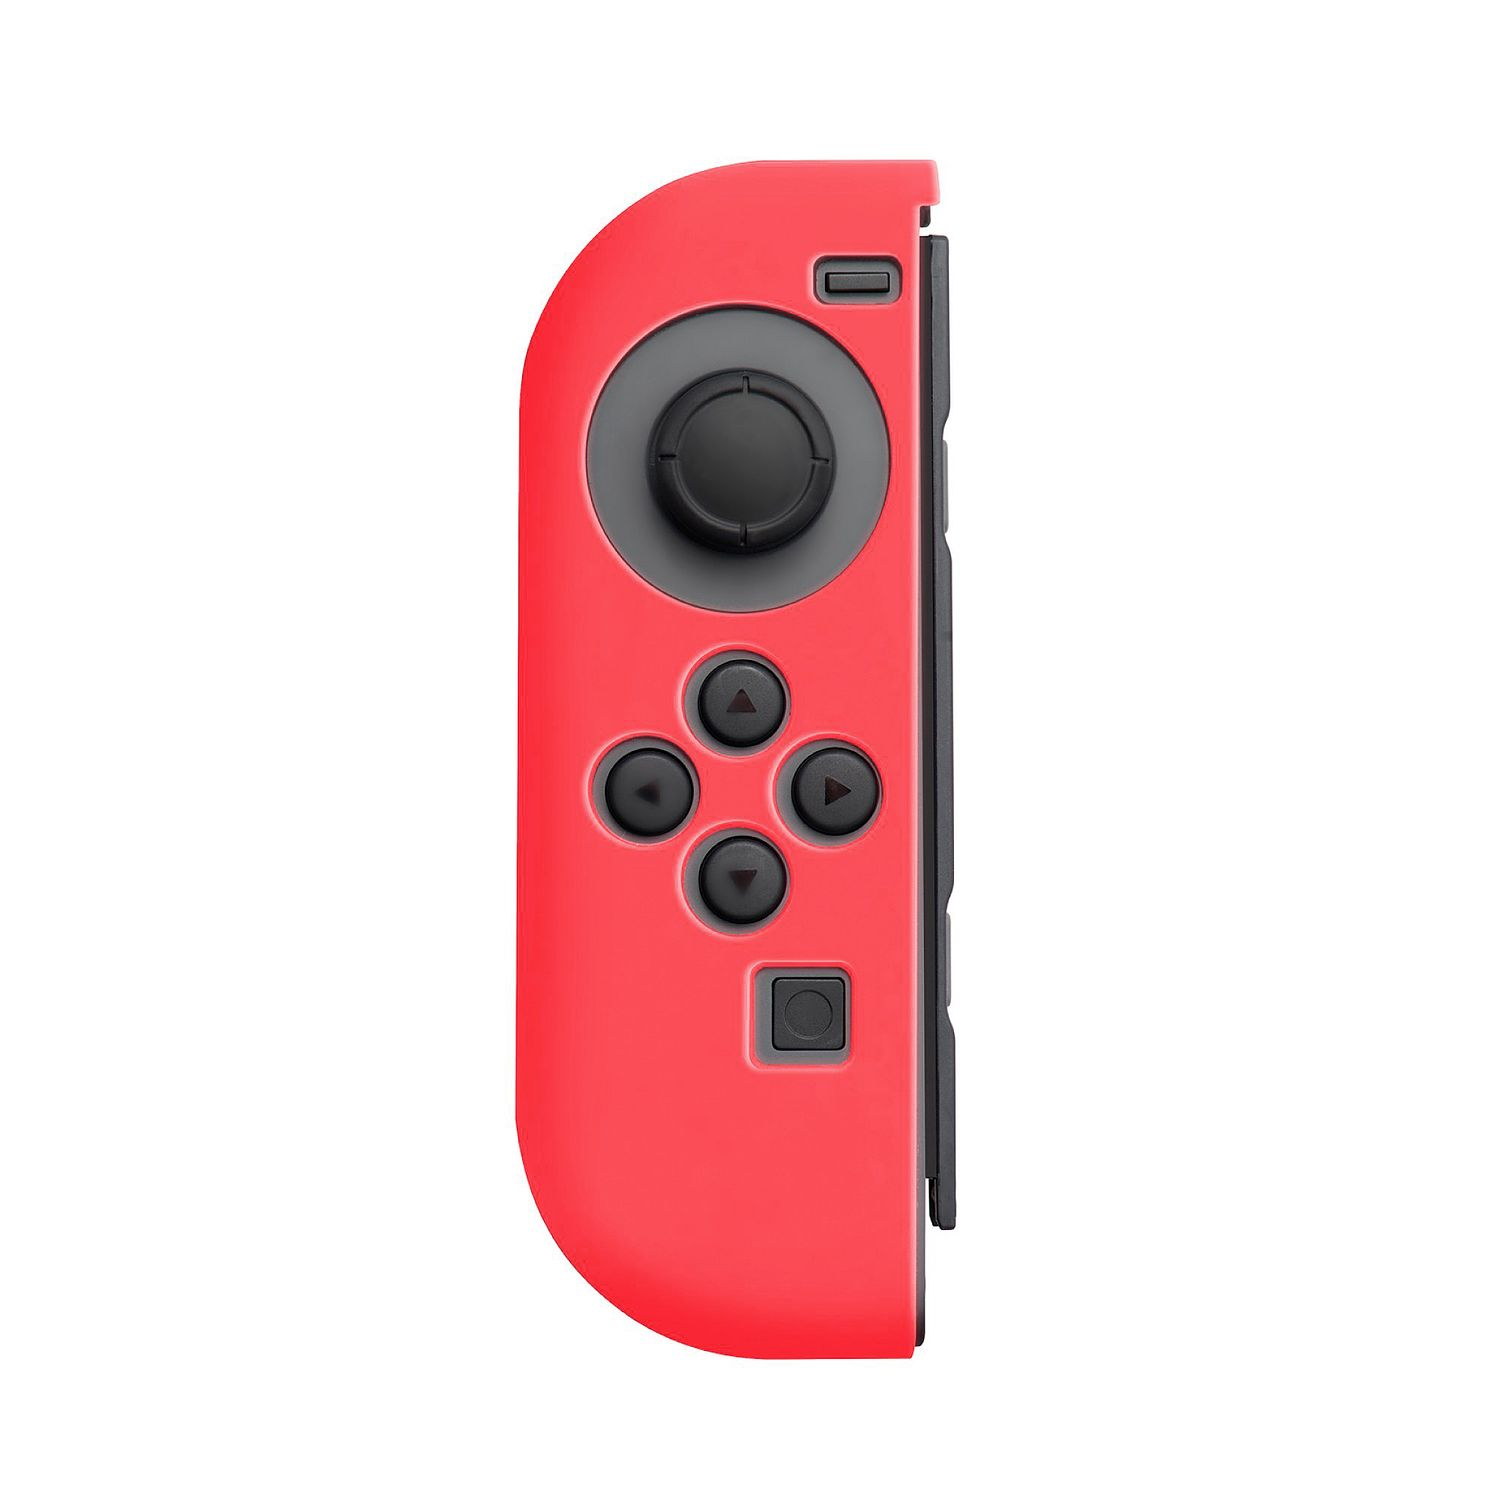 Nintendo Switch Joy-Con case, by Insten (Left RED + Right BLACK) Nintendo Switch Joy-Con Skin Case Protective Cover For Nintendo Switch Joy Con Left/Right Controller [2017 New Release] - image 2 of 3